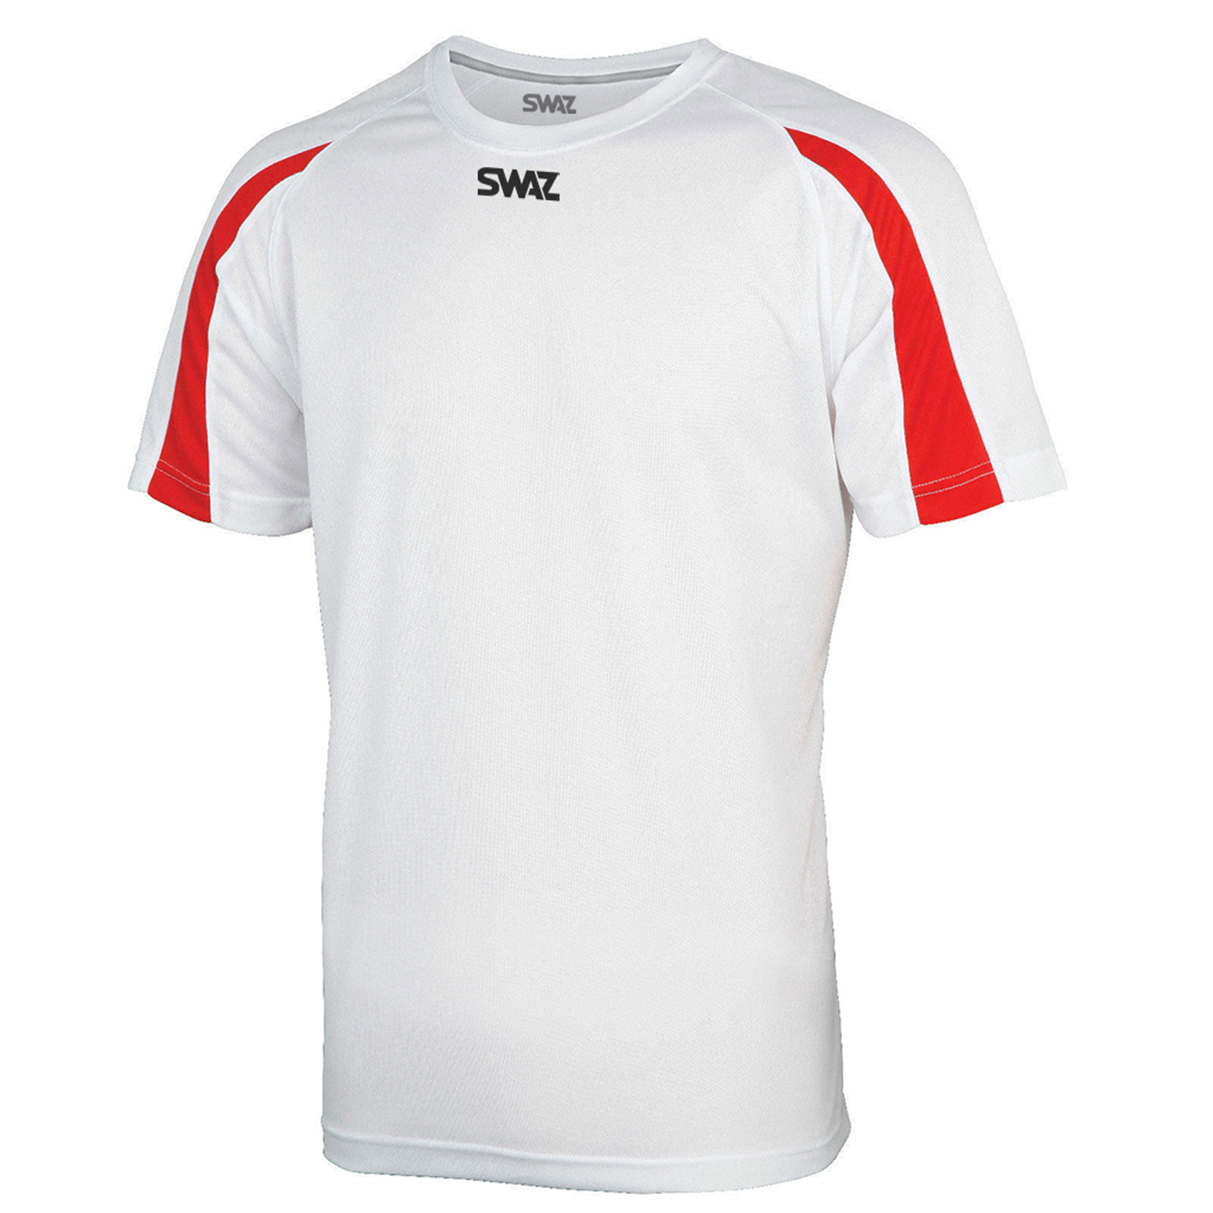 SWAZ Youth Premier Training T-Shirt – White/Red